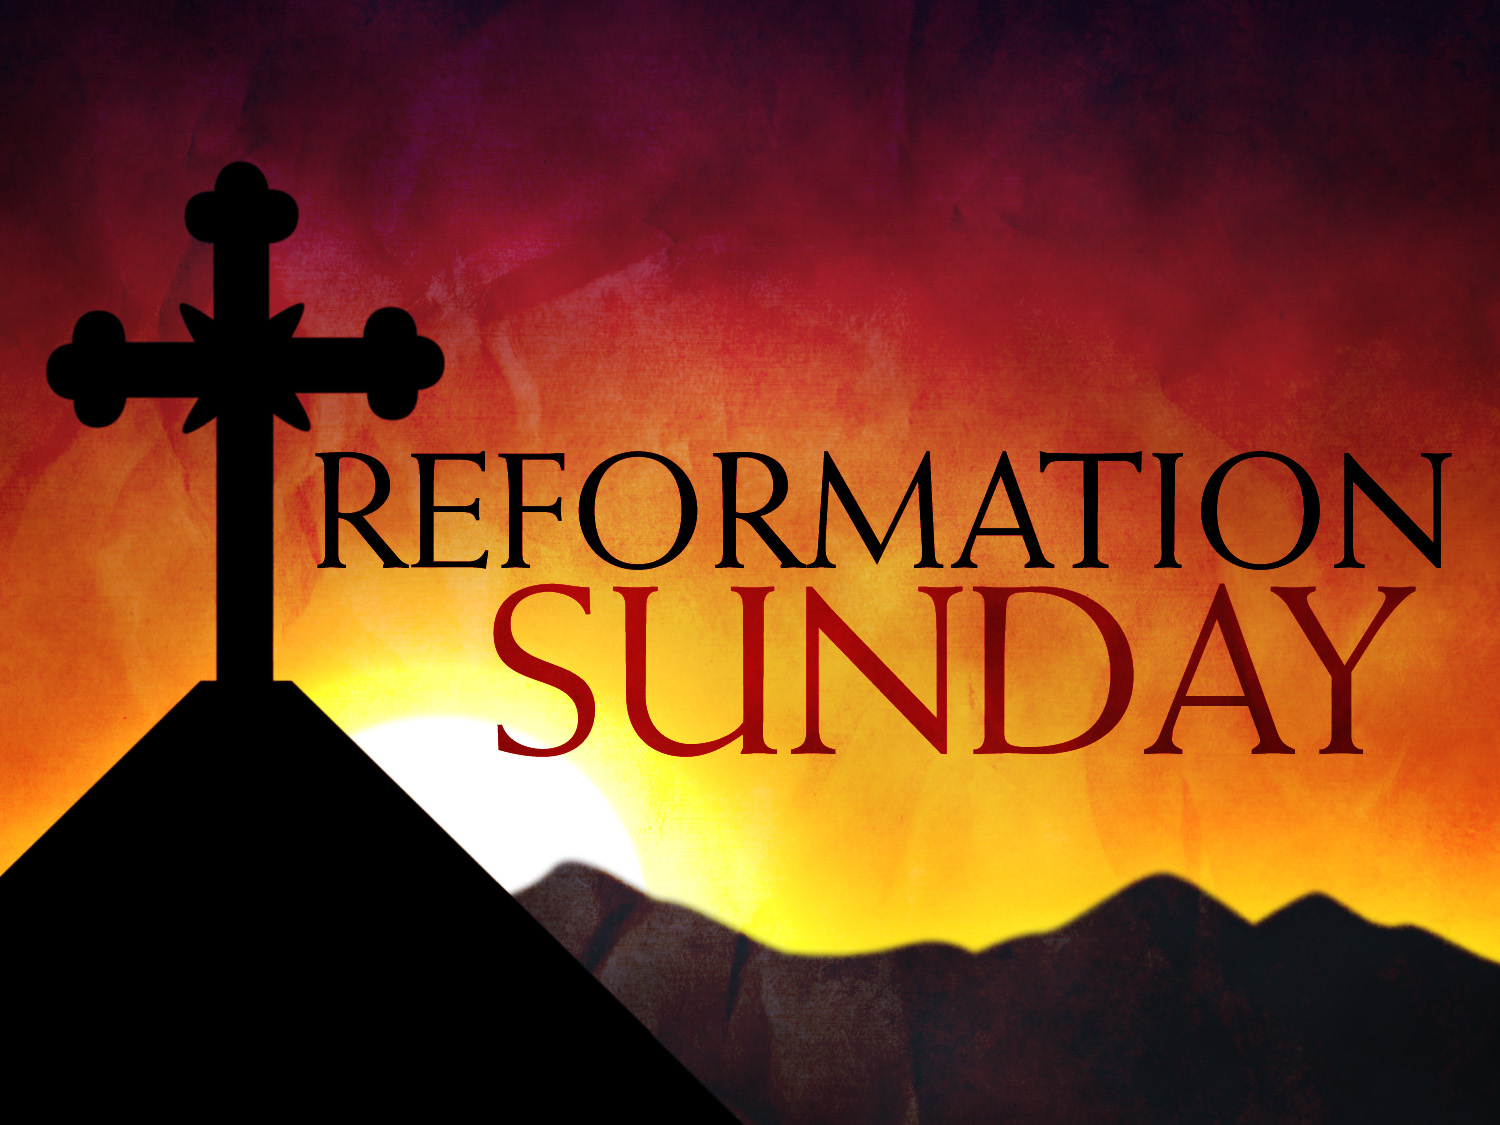 Reformation Sunday 2013: The Need for an Evangelical Reformation